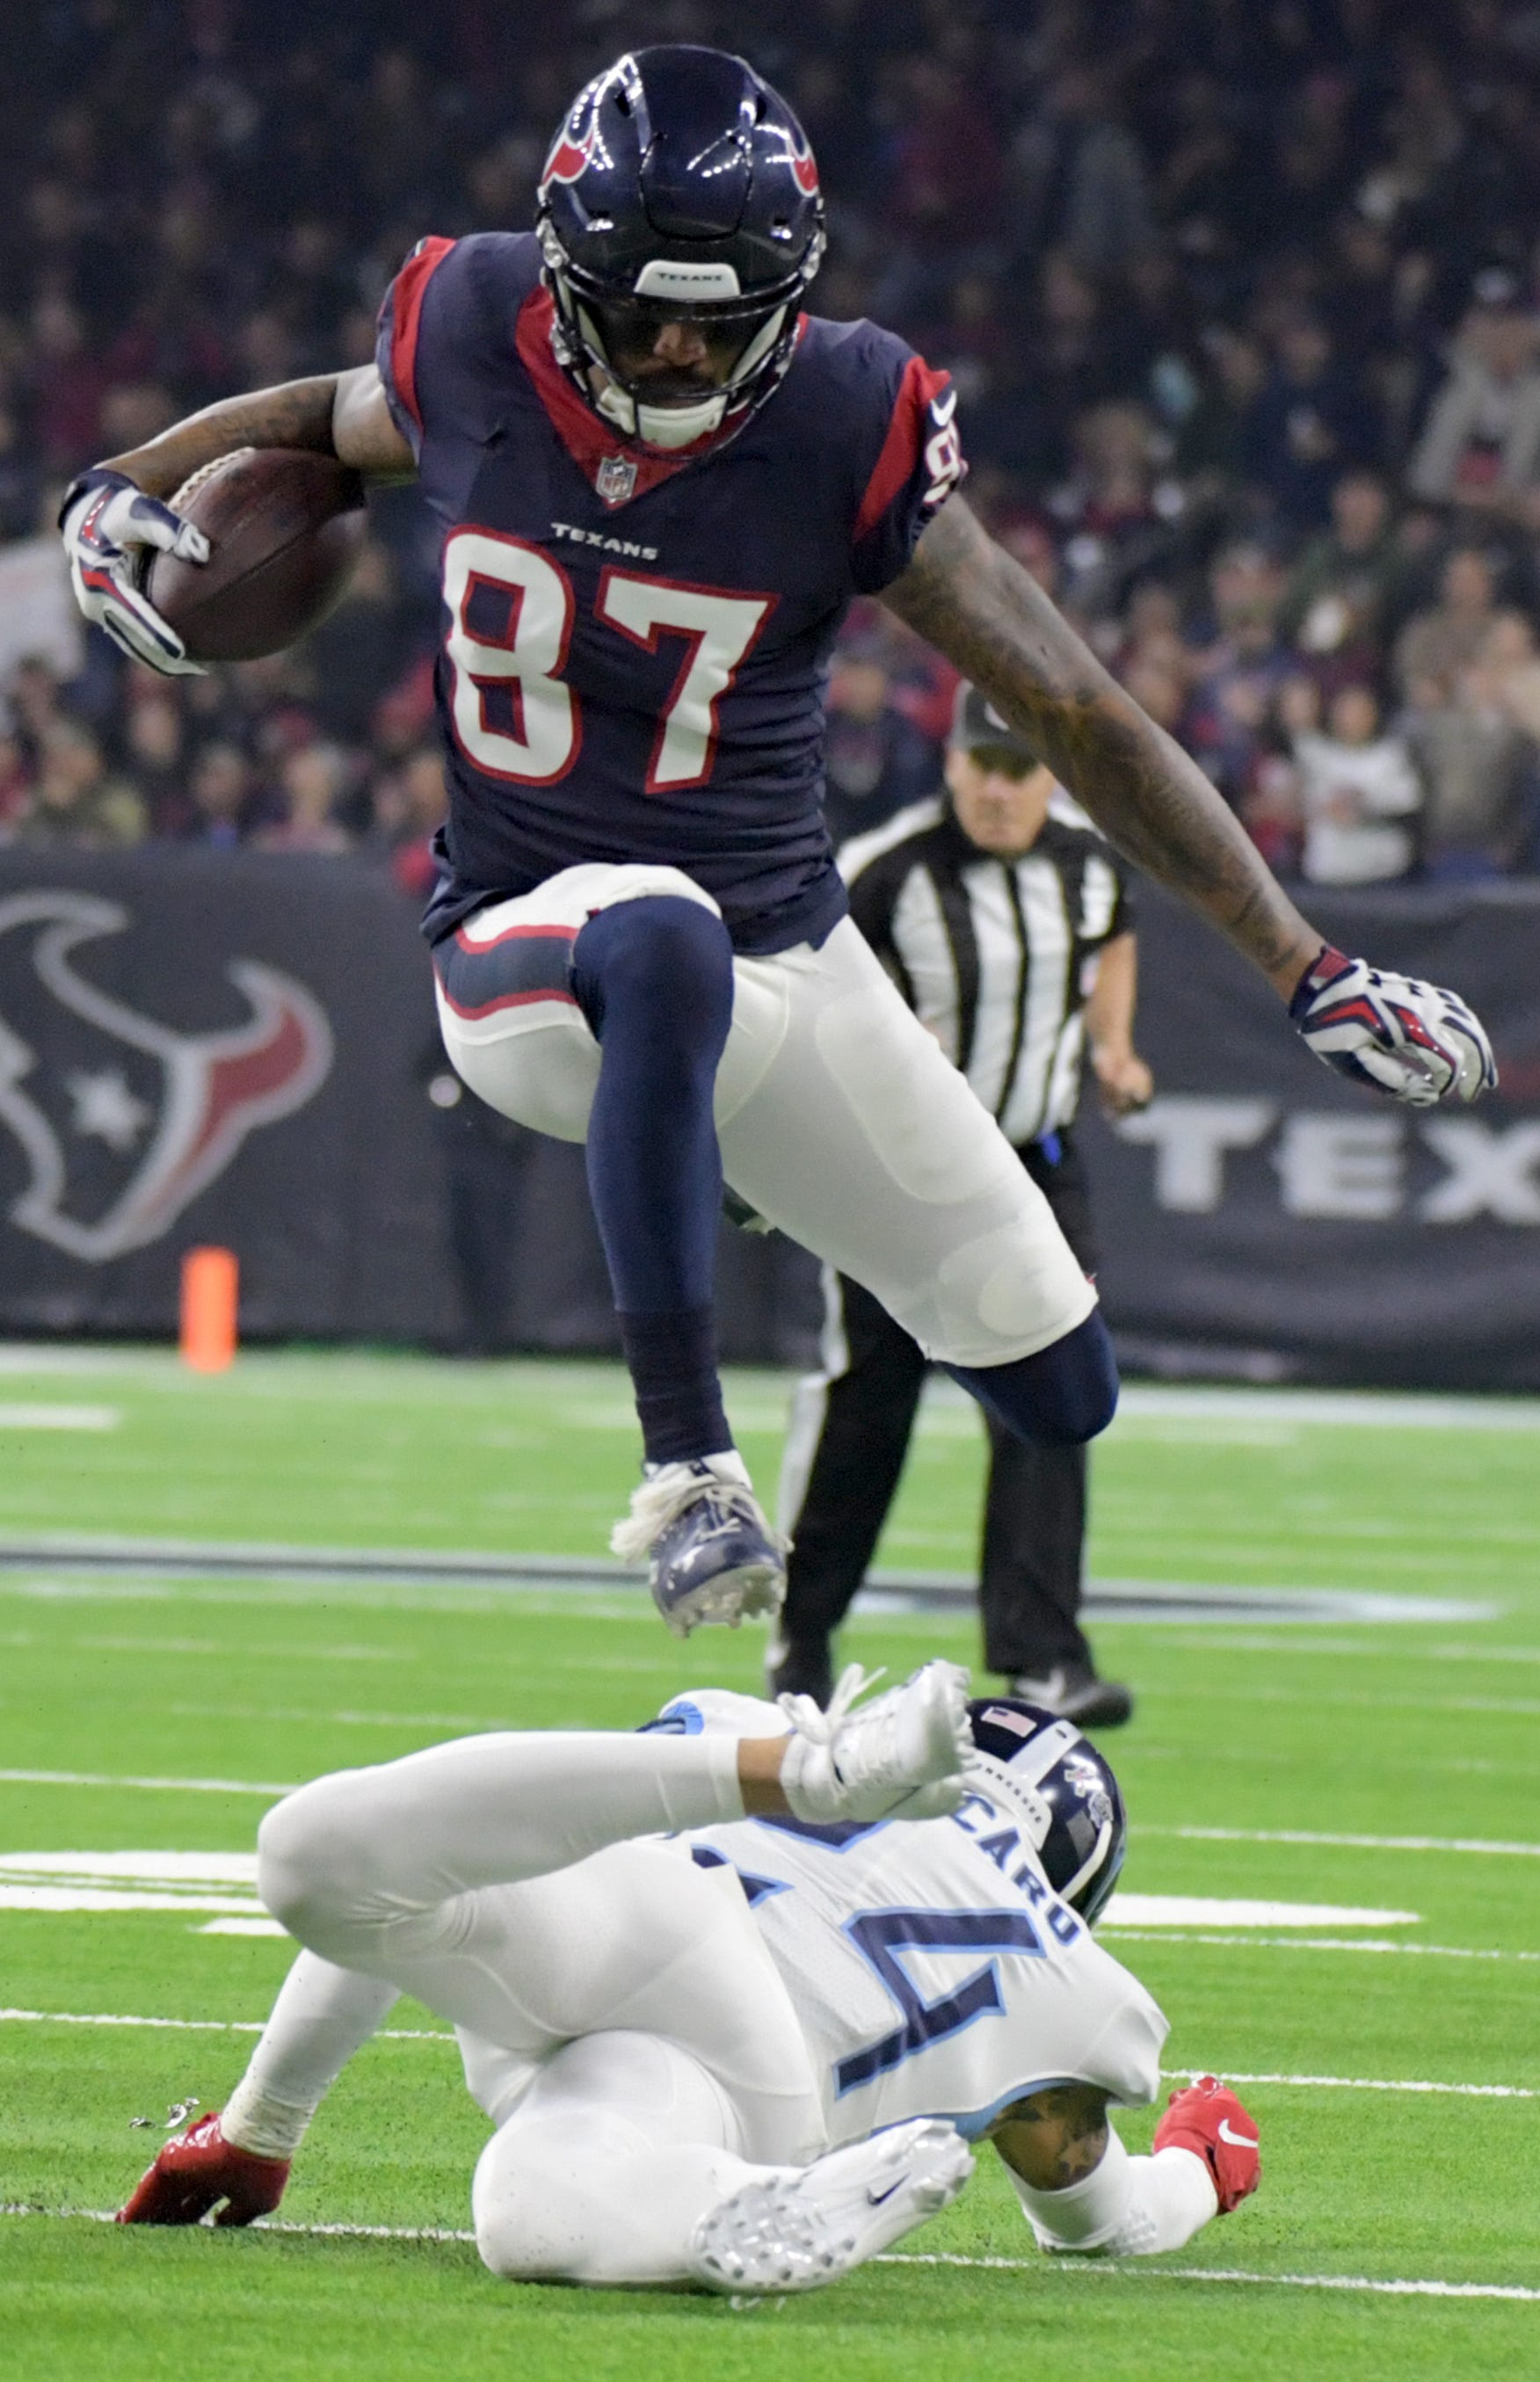 Nfl Tennessee Titans At Houston Texans